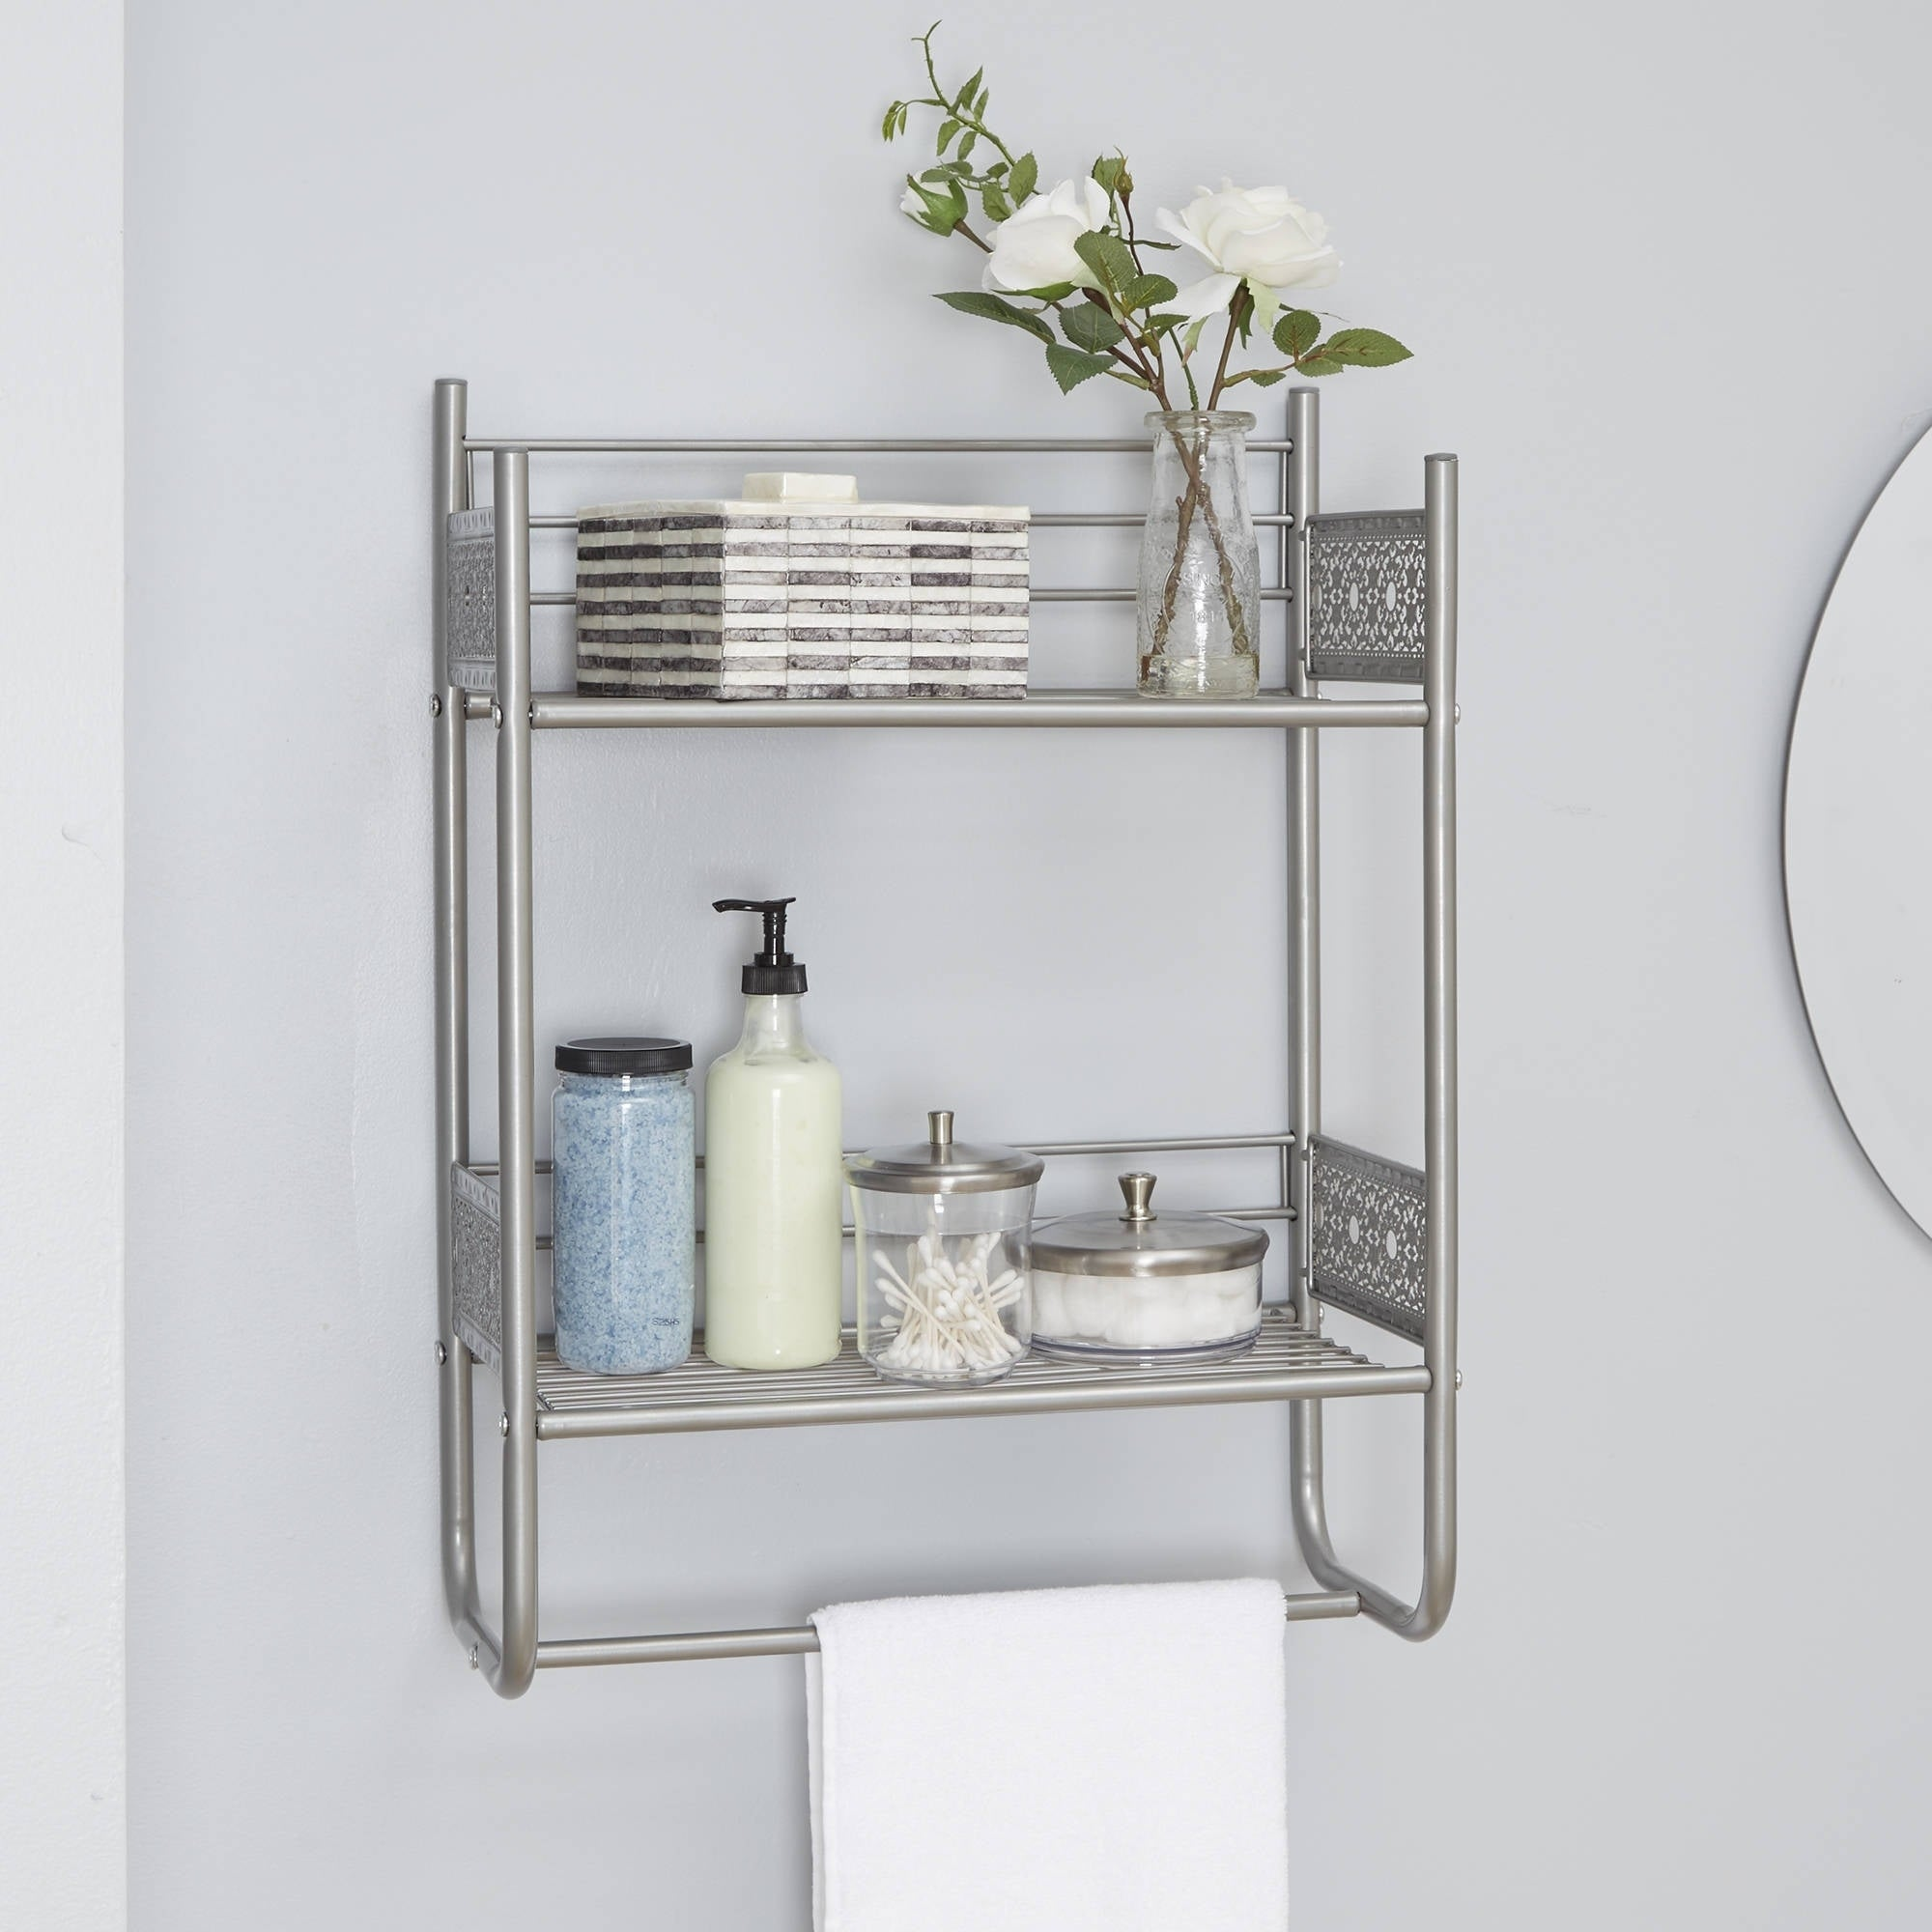 Buy Bathroom Organization & Shelving Online at Overstock | Our Best Bathroom Furniture Deals